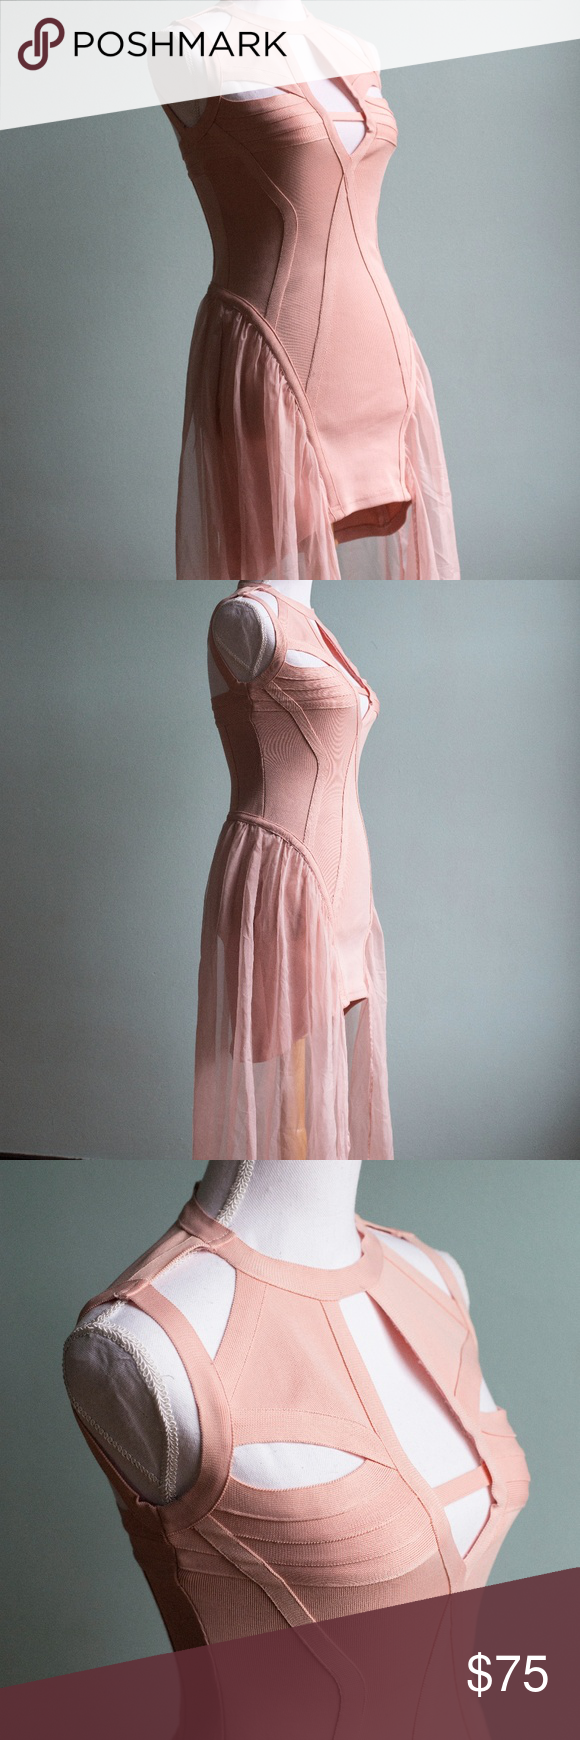 Pink cut out dress  Rare UNIF Godspeed Bold Cut Out Dress  Sheer fabrics Unif and High low